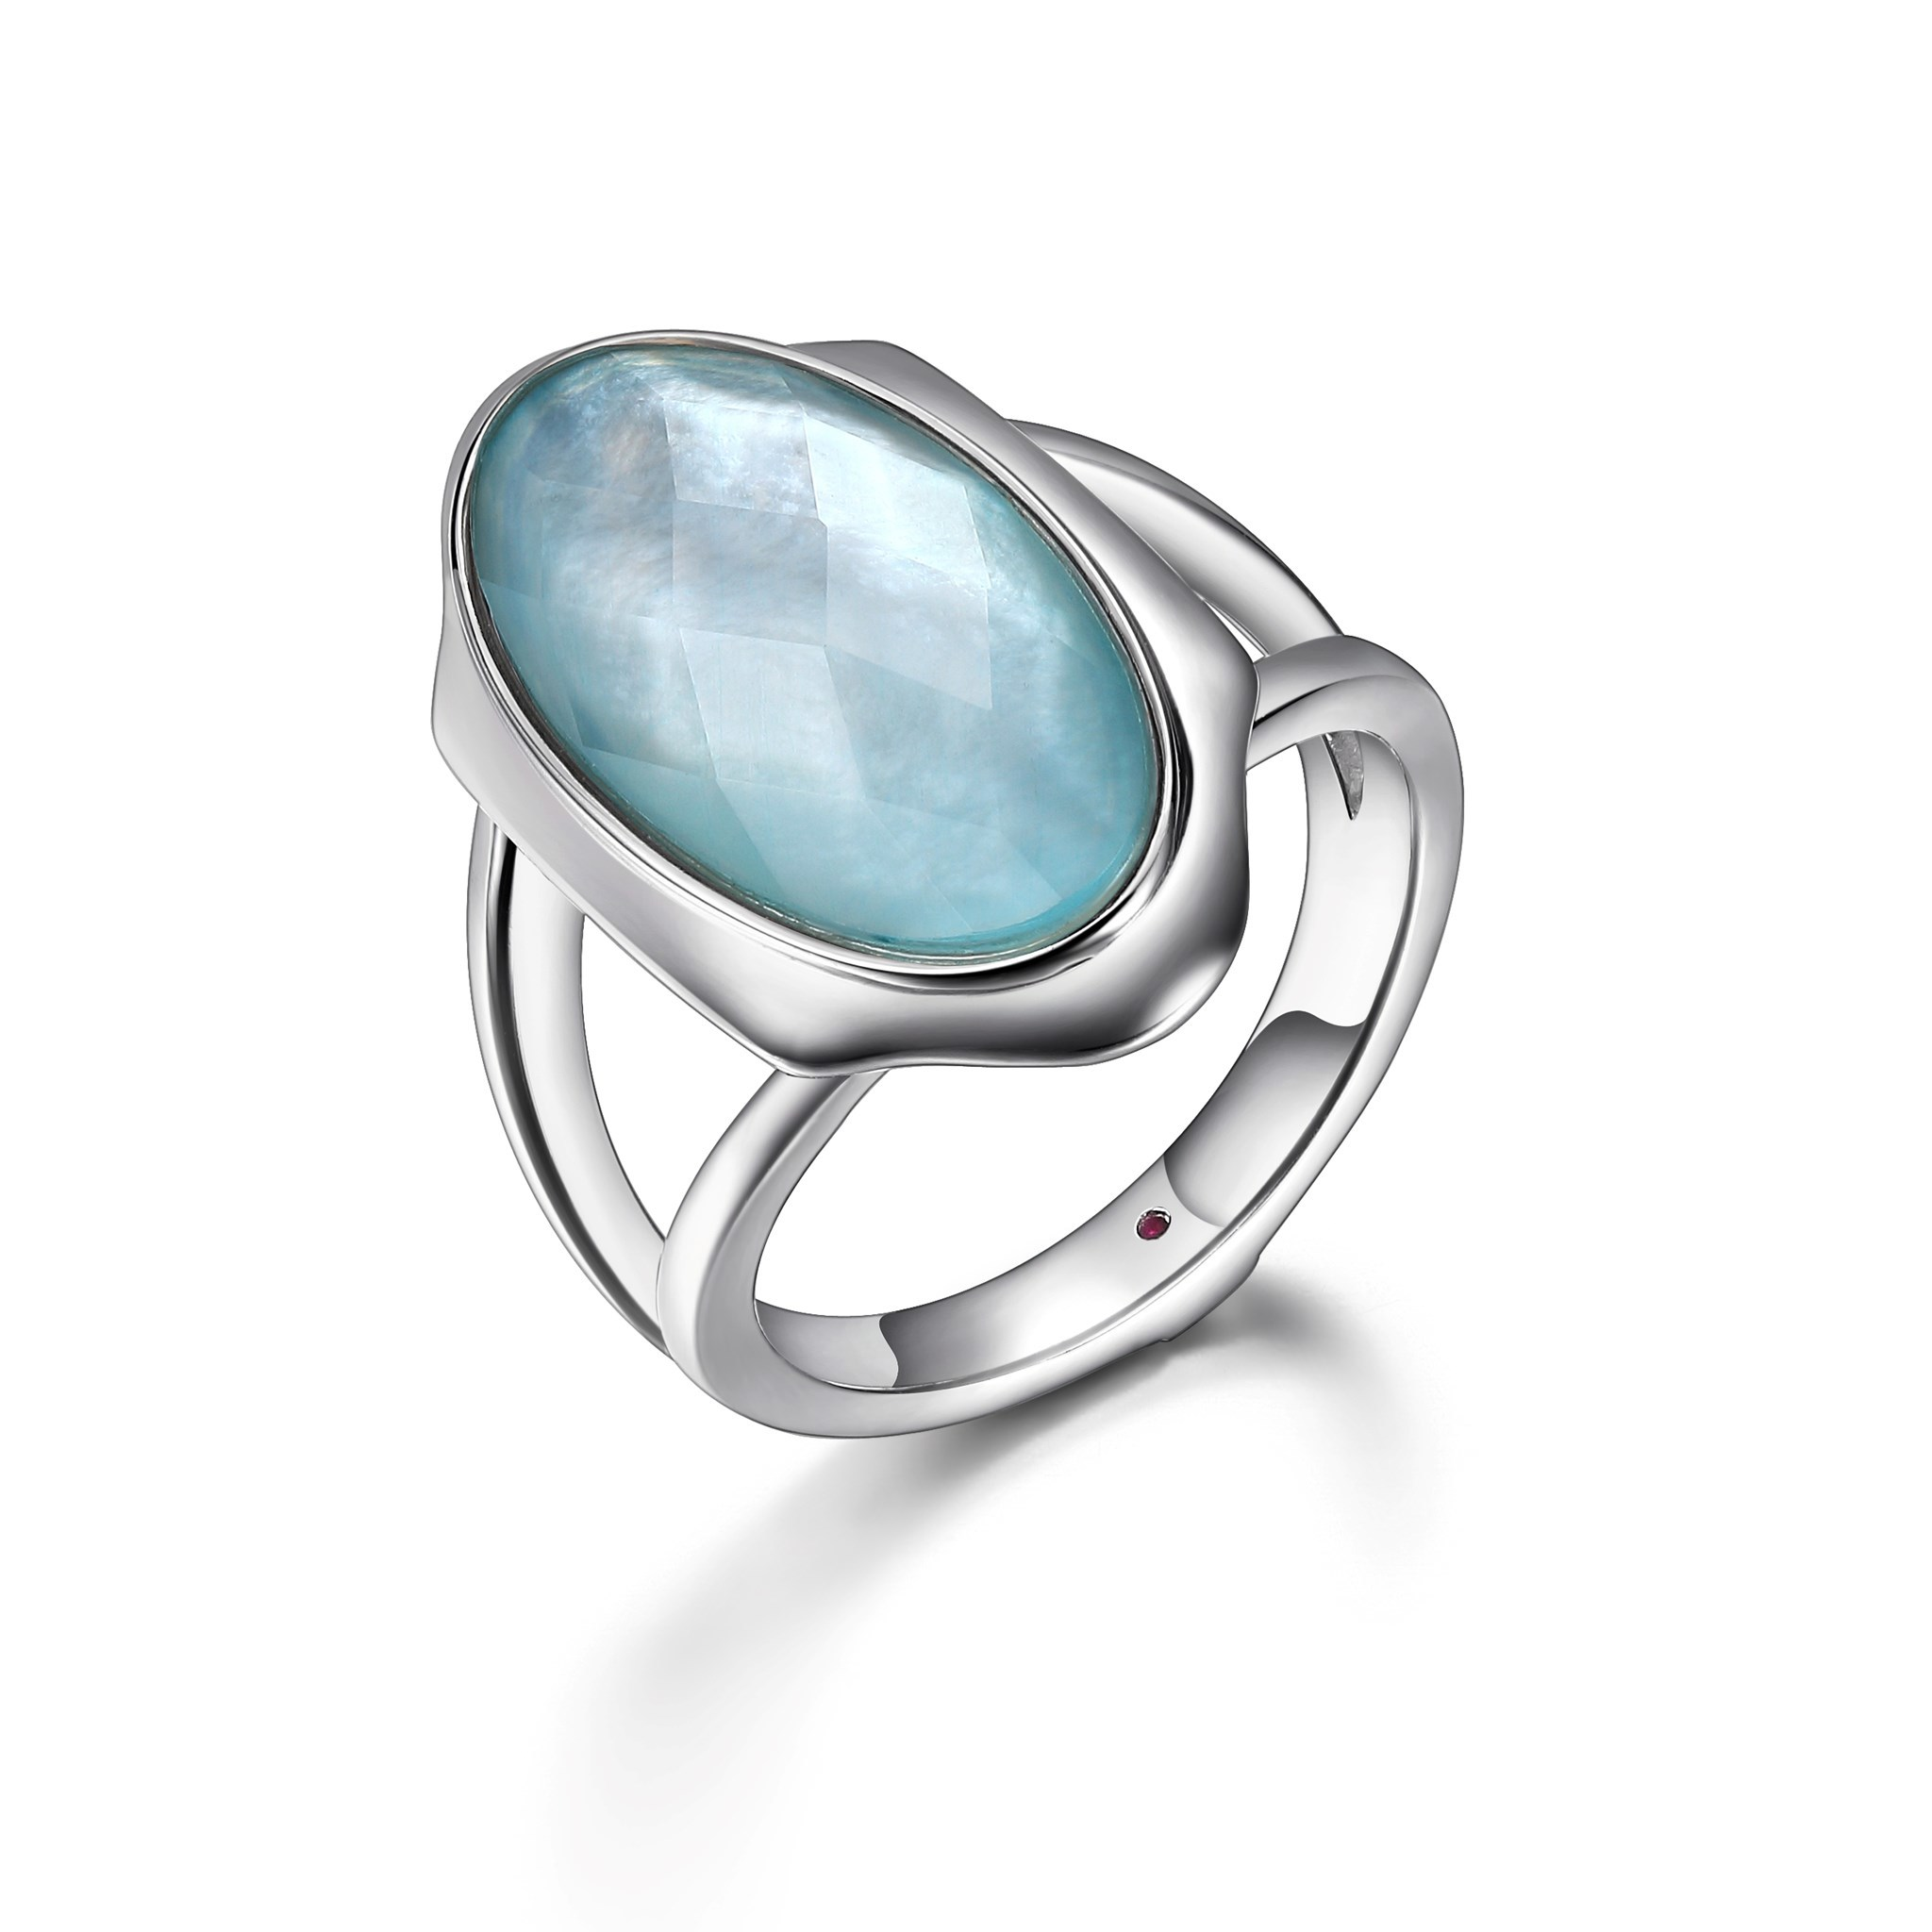 Crystal & Mother-of-Pearl Doublet Ring